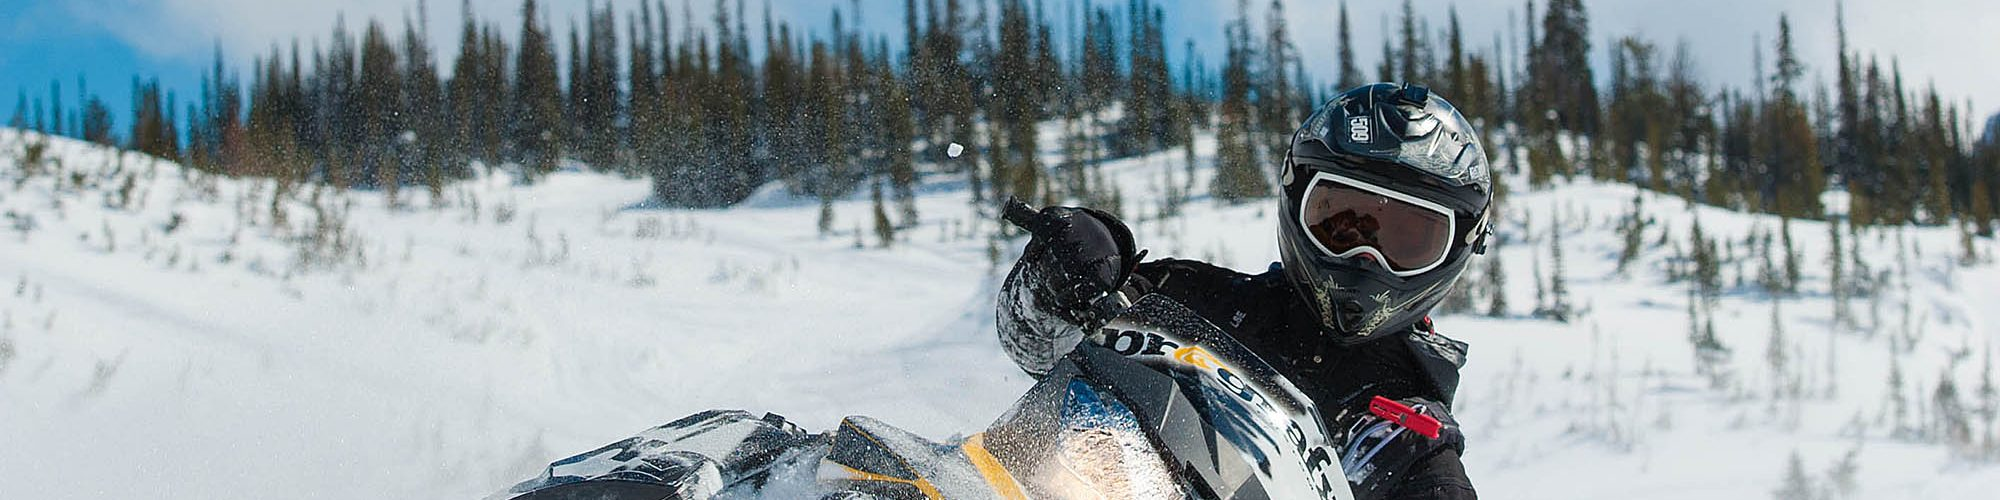 Kicking Horse Resort snowmobile tour for all levels of ability